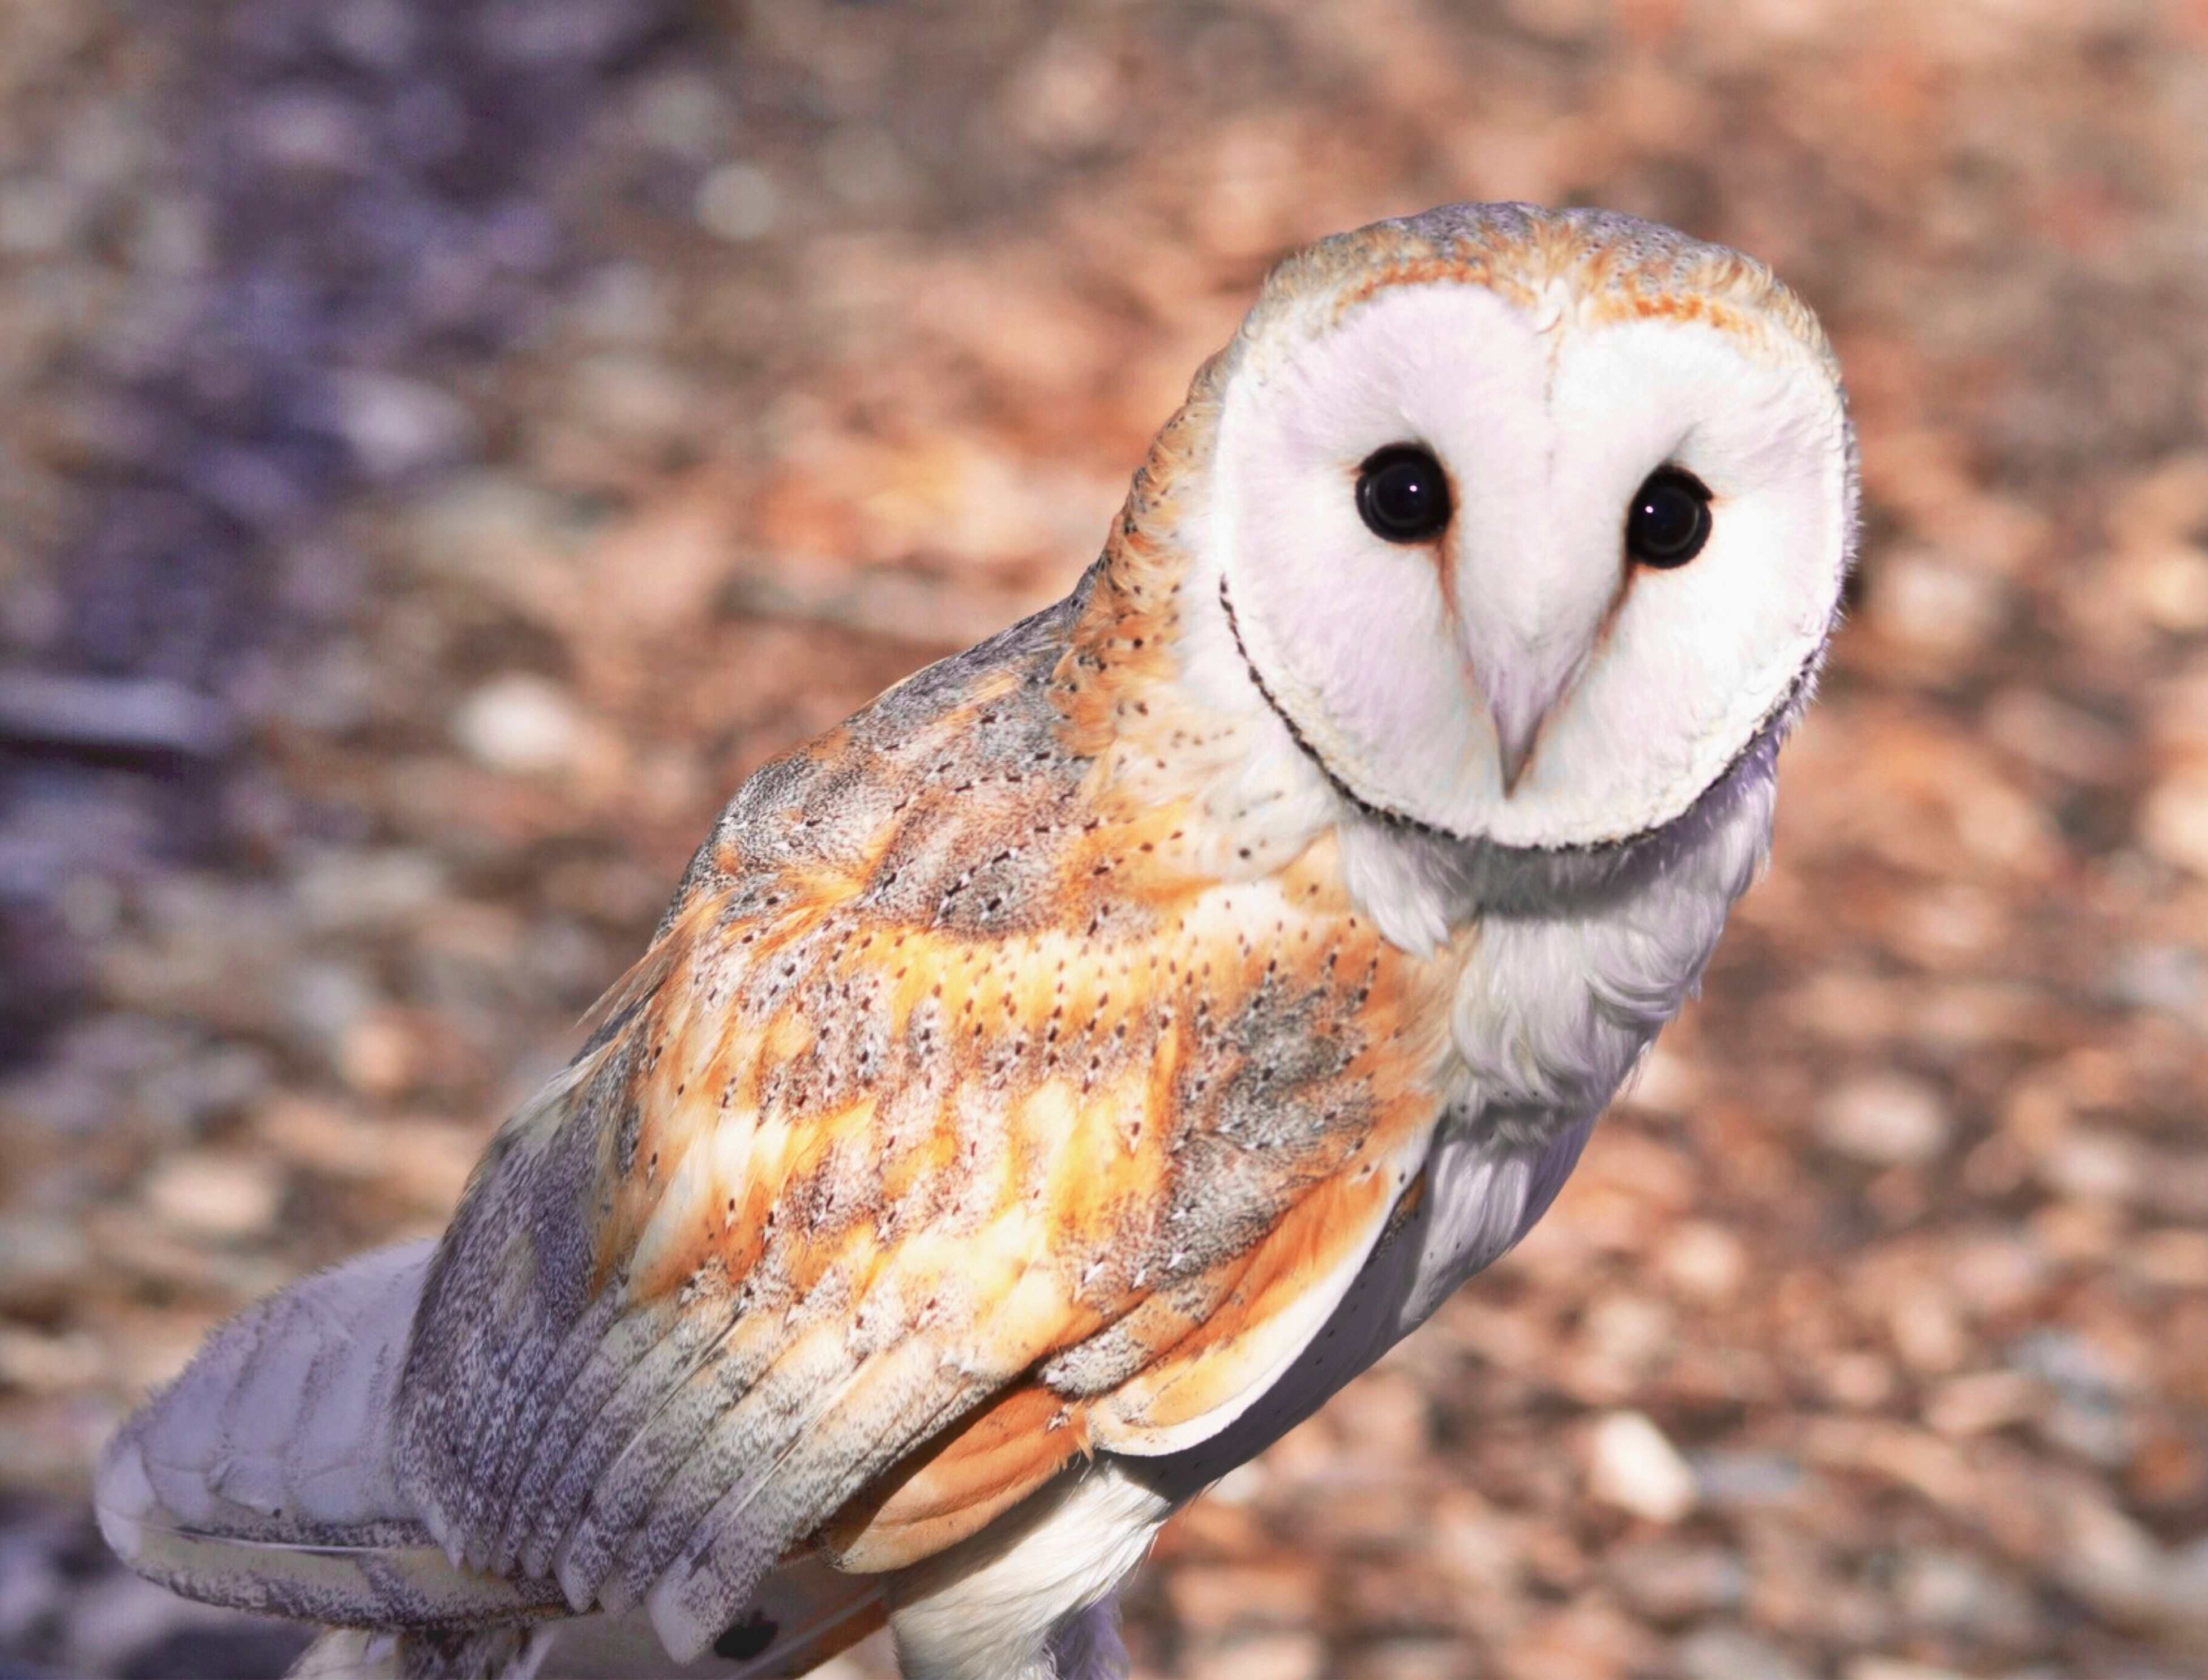 animal themes, one animal, animals in the wild, wildlife, focus on foreground, close-up, portrait, front view, bird, outdoors, field, looking at camera, animal head, owl, day, nature, no people, beak, bird of prey